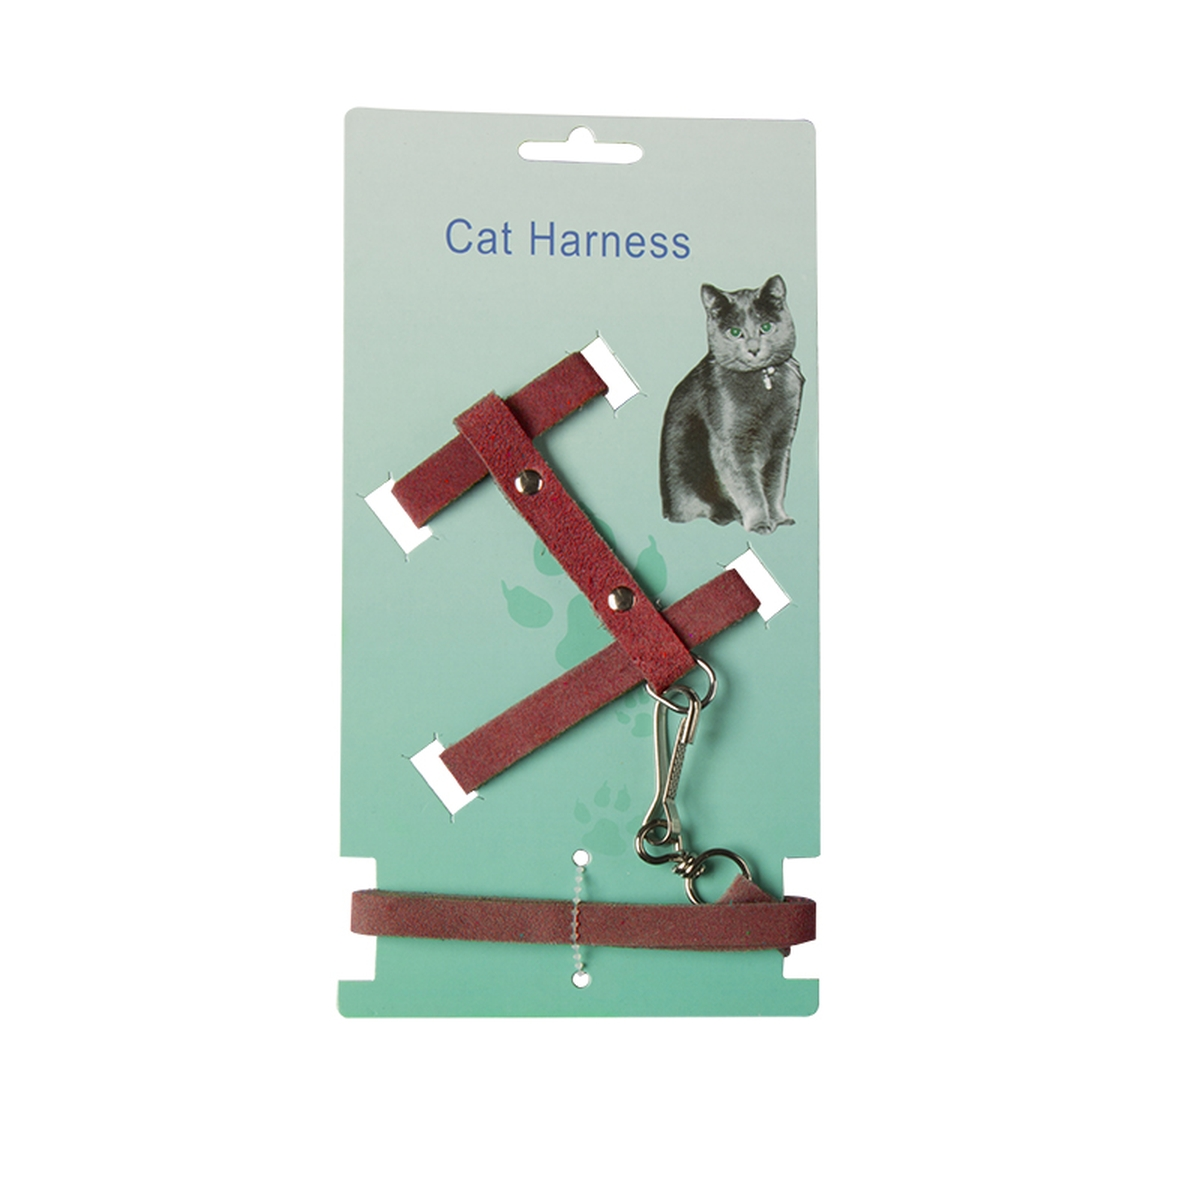 CAT HARNESS+LIJN SUEDE ROOD N 00001